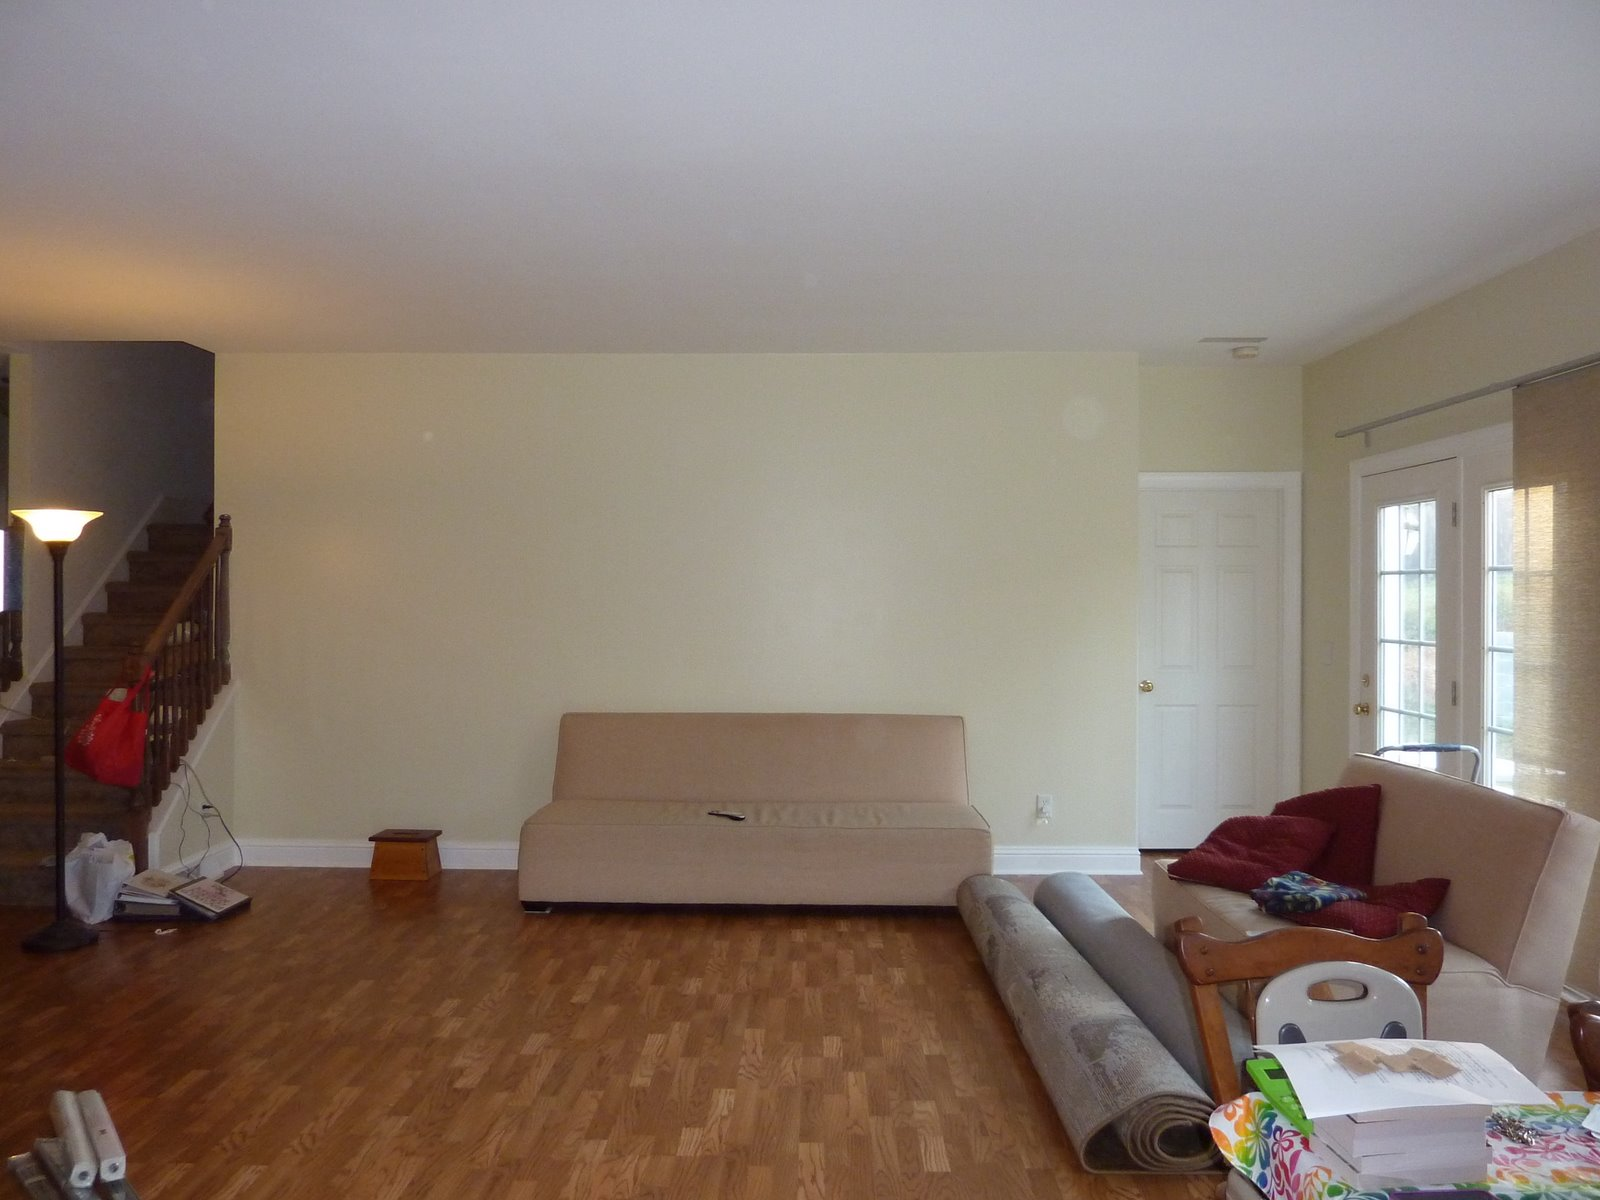 The Living Room BEFORE Look At That Big Bare Wall We Looked It For 2 Years But I Finally Figured Out What To Do With